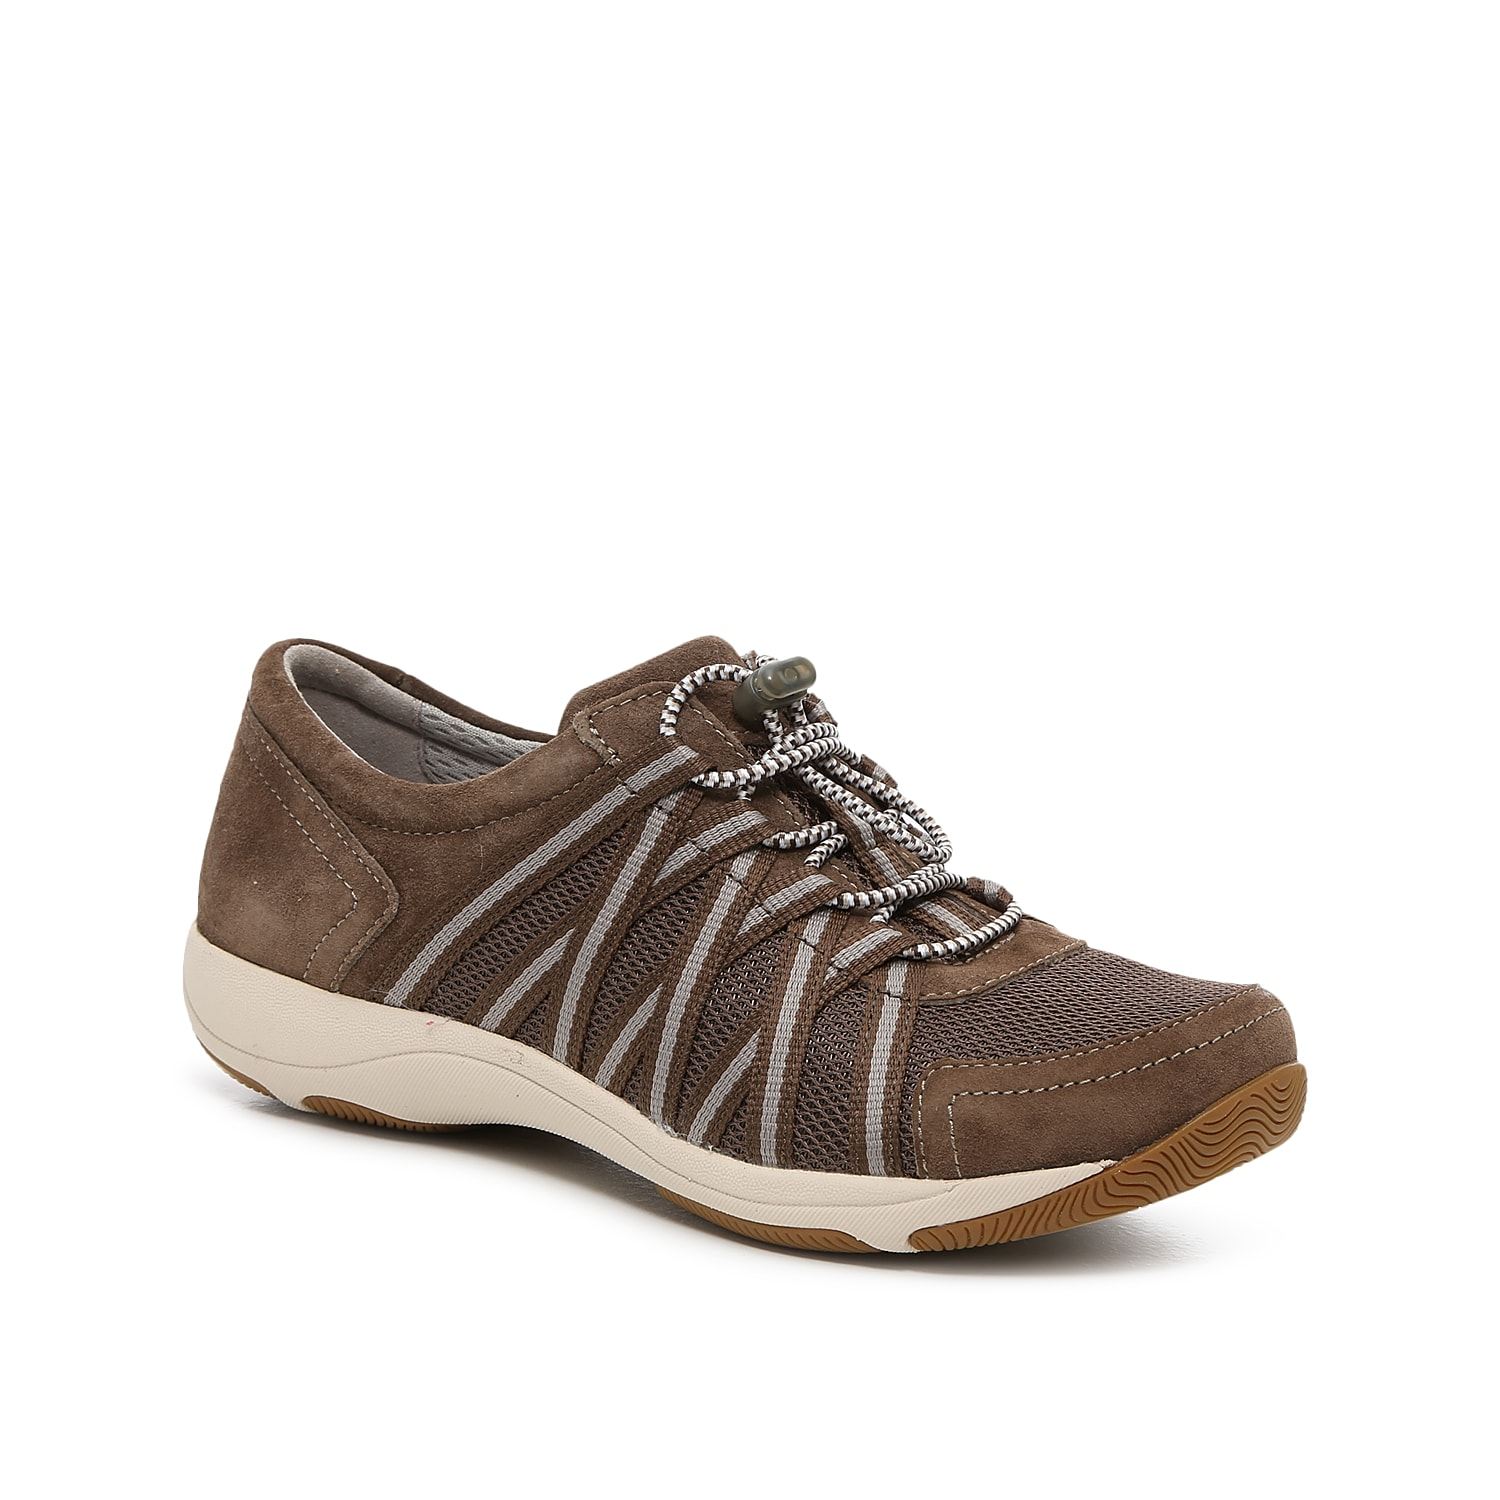 You\\\'ll be ready for anything in the Honor sneaker from Dansko. This hiker-inspired pair features an Aegis® anti-microbial lining, 3M Scotchgard™ stain-resistant treatment, and memory foam footbed for your new favorite.